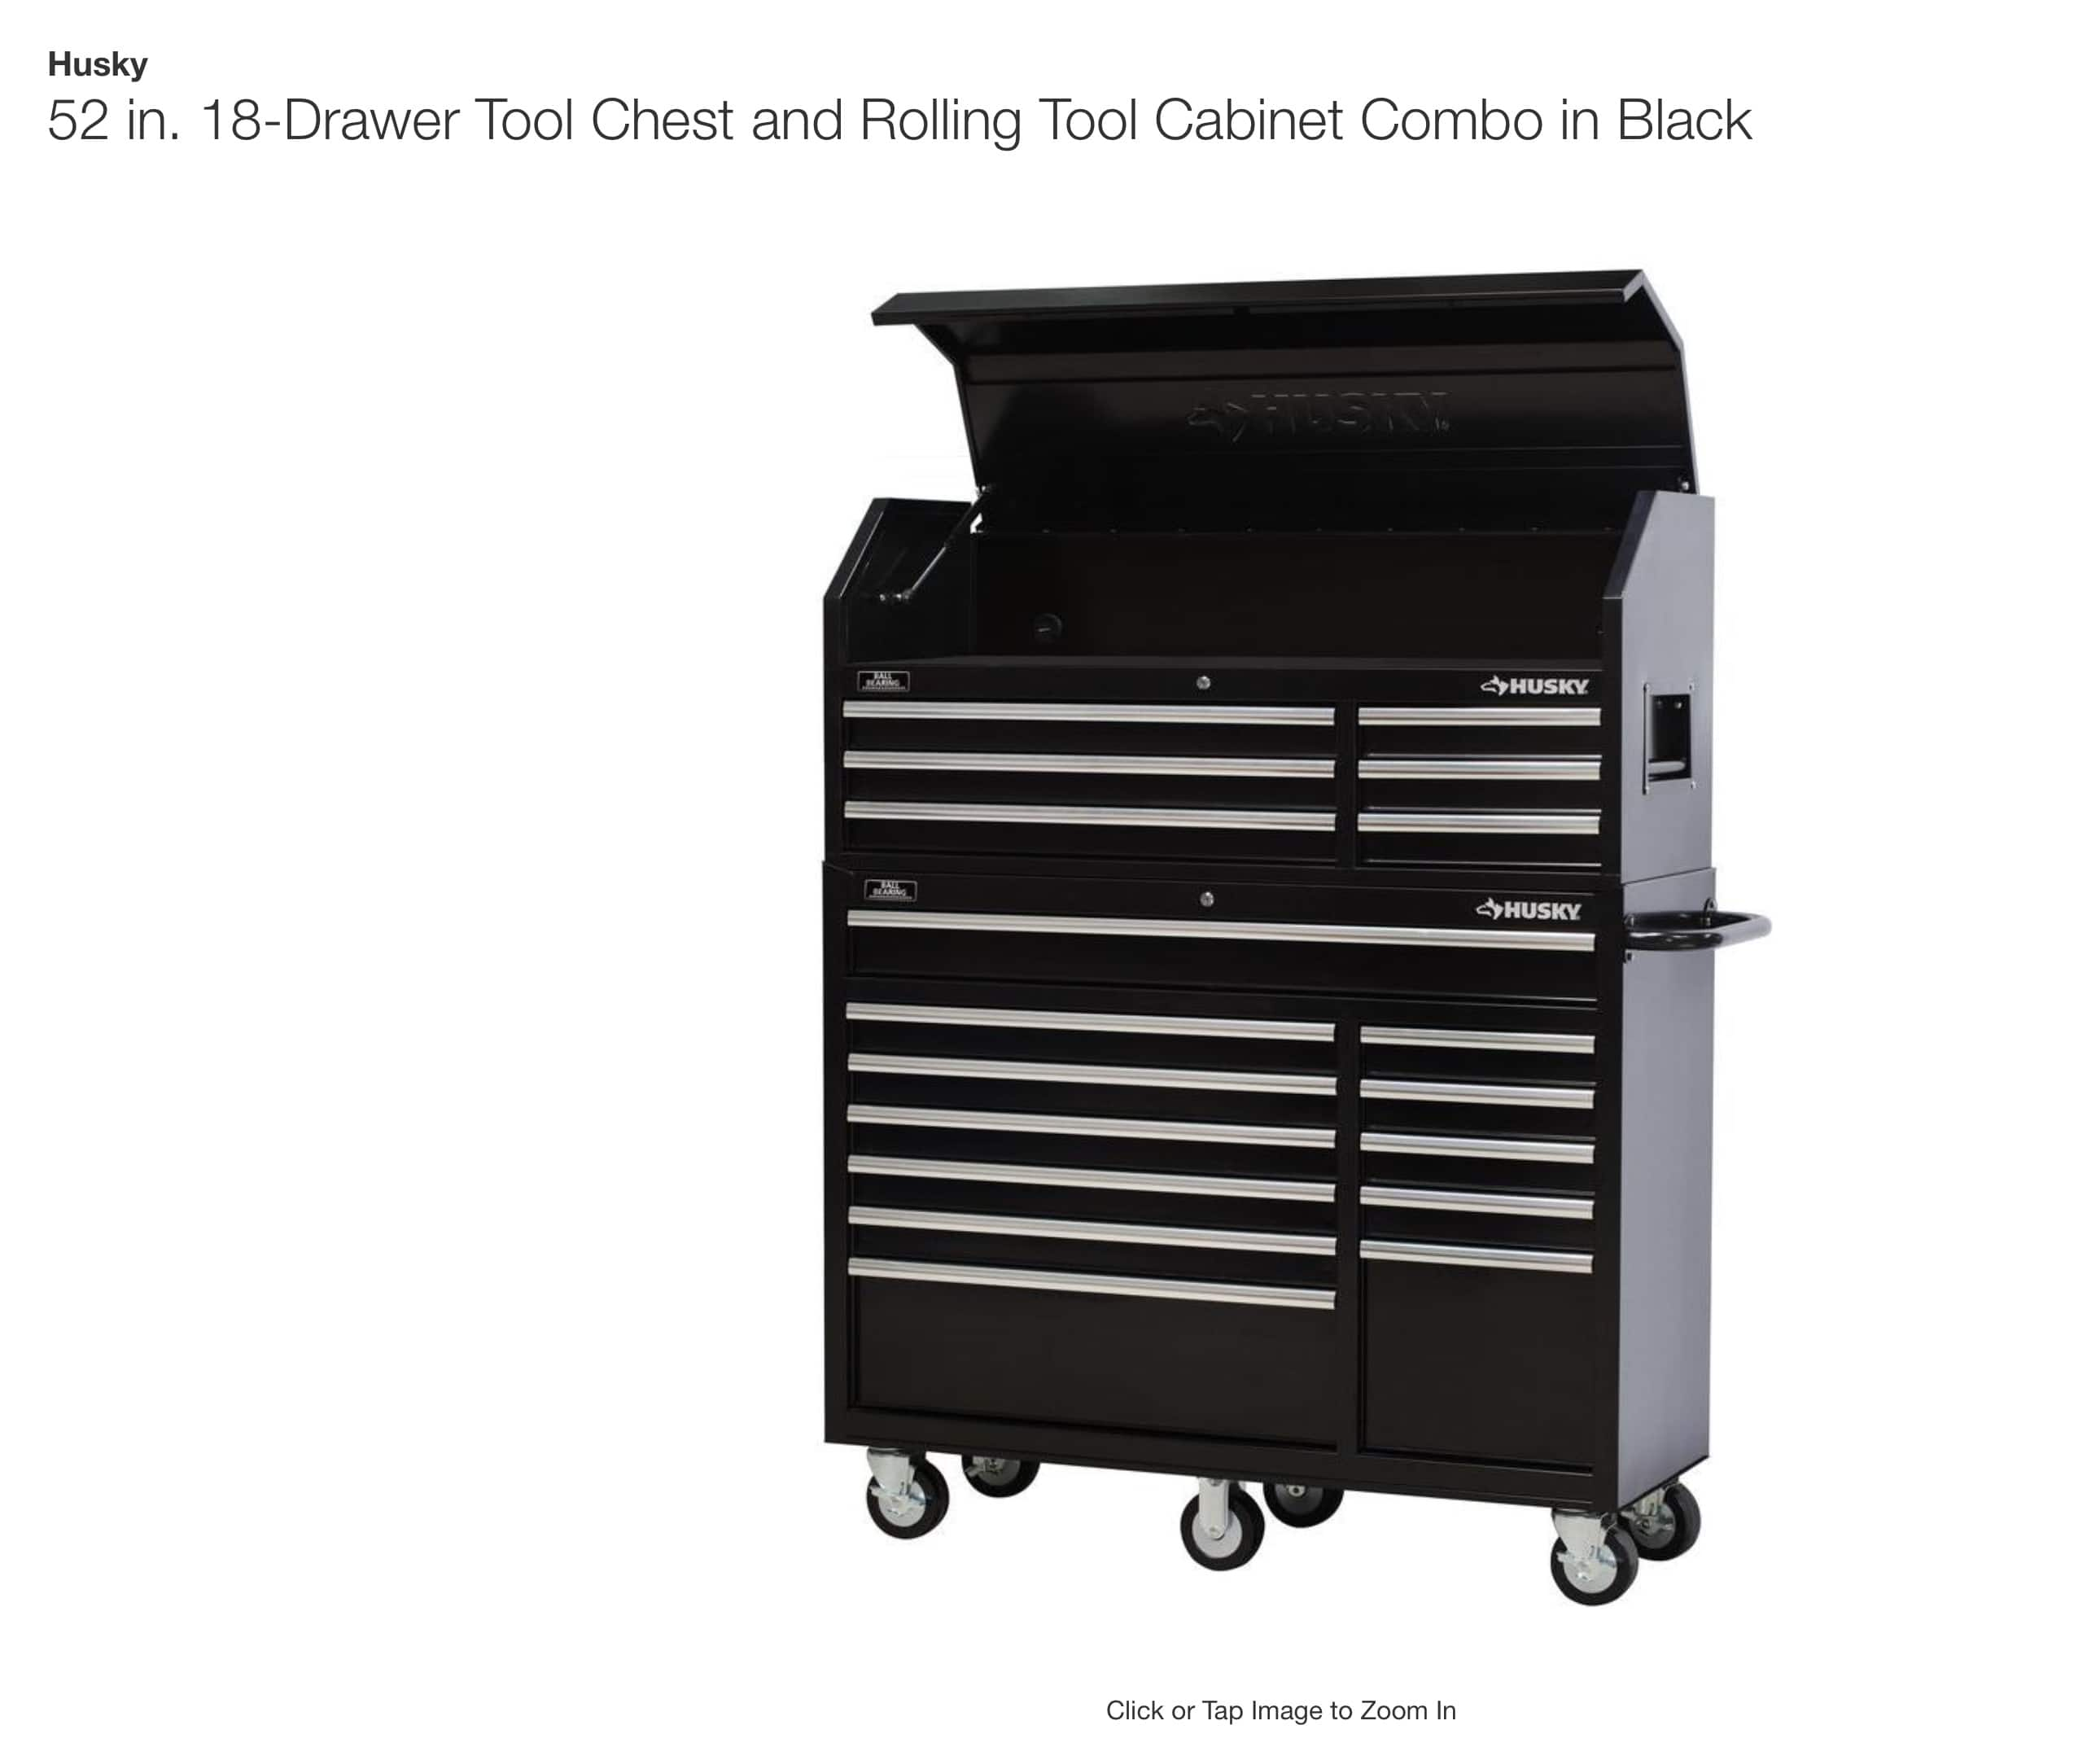 HUSKY 52 in. 18-Drawer Tool Chest and Rolling Tool Cabinet Combo in Black $498 Local pickup only